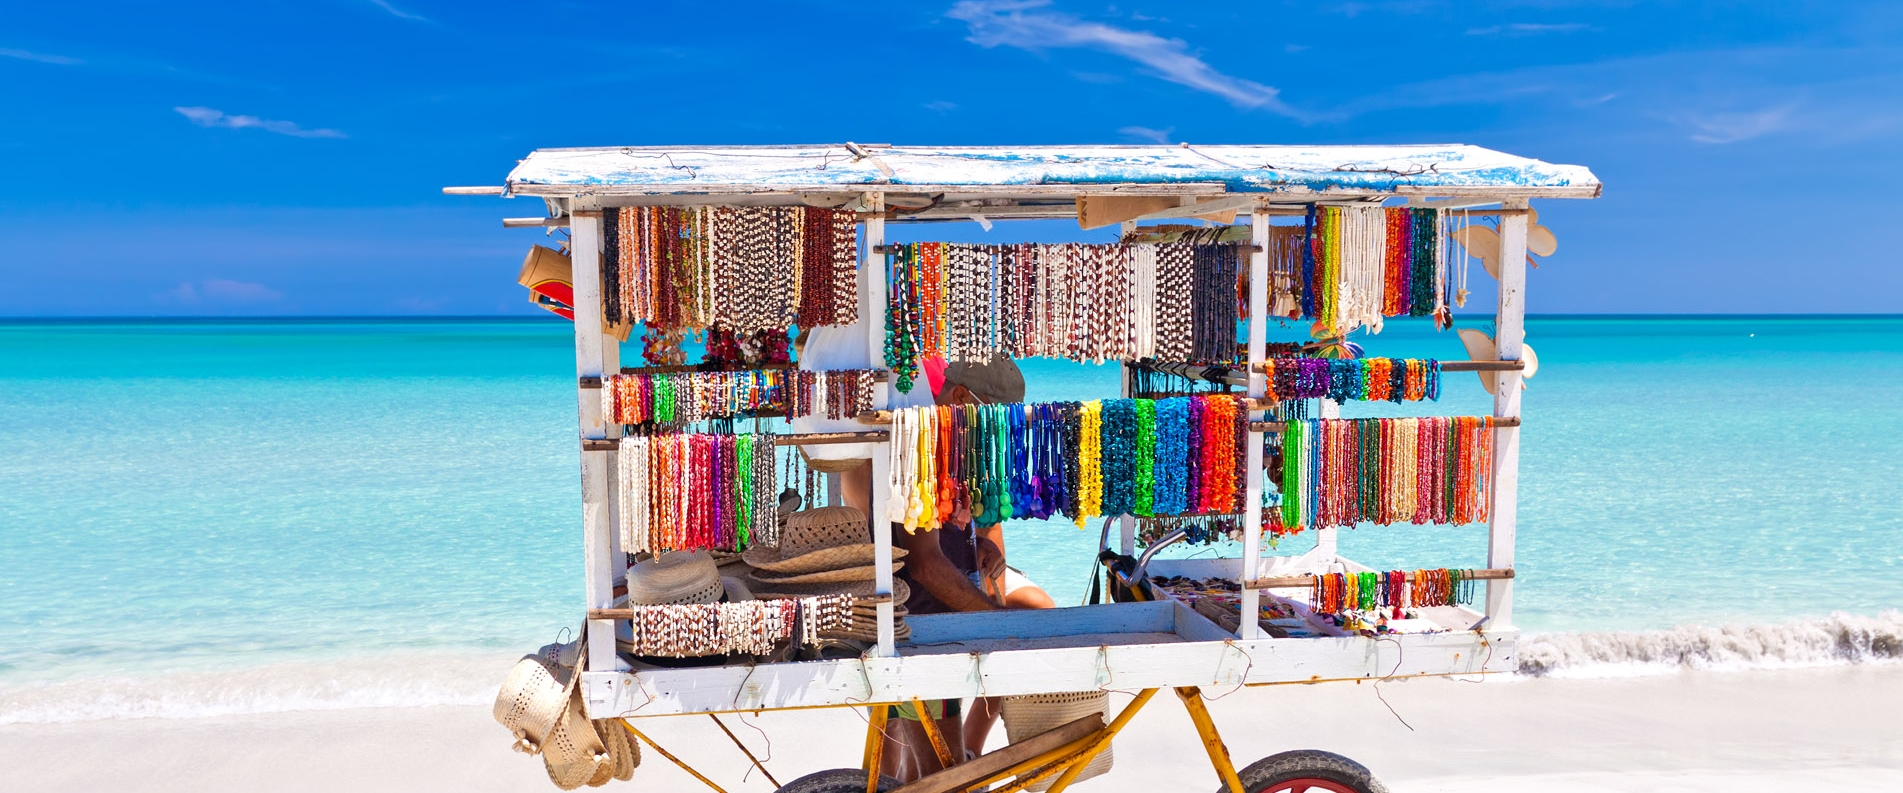 The best souvenirs to take home from Cyprus